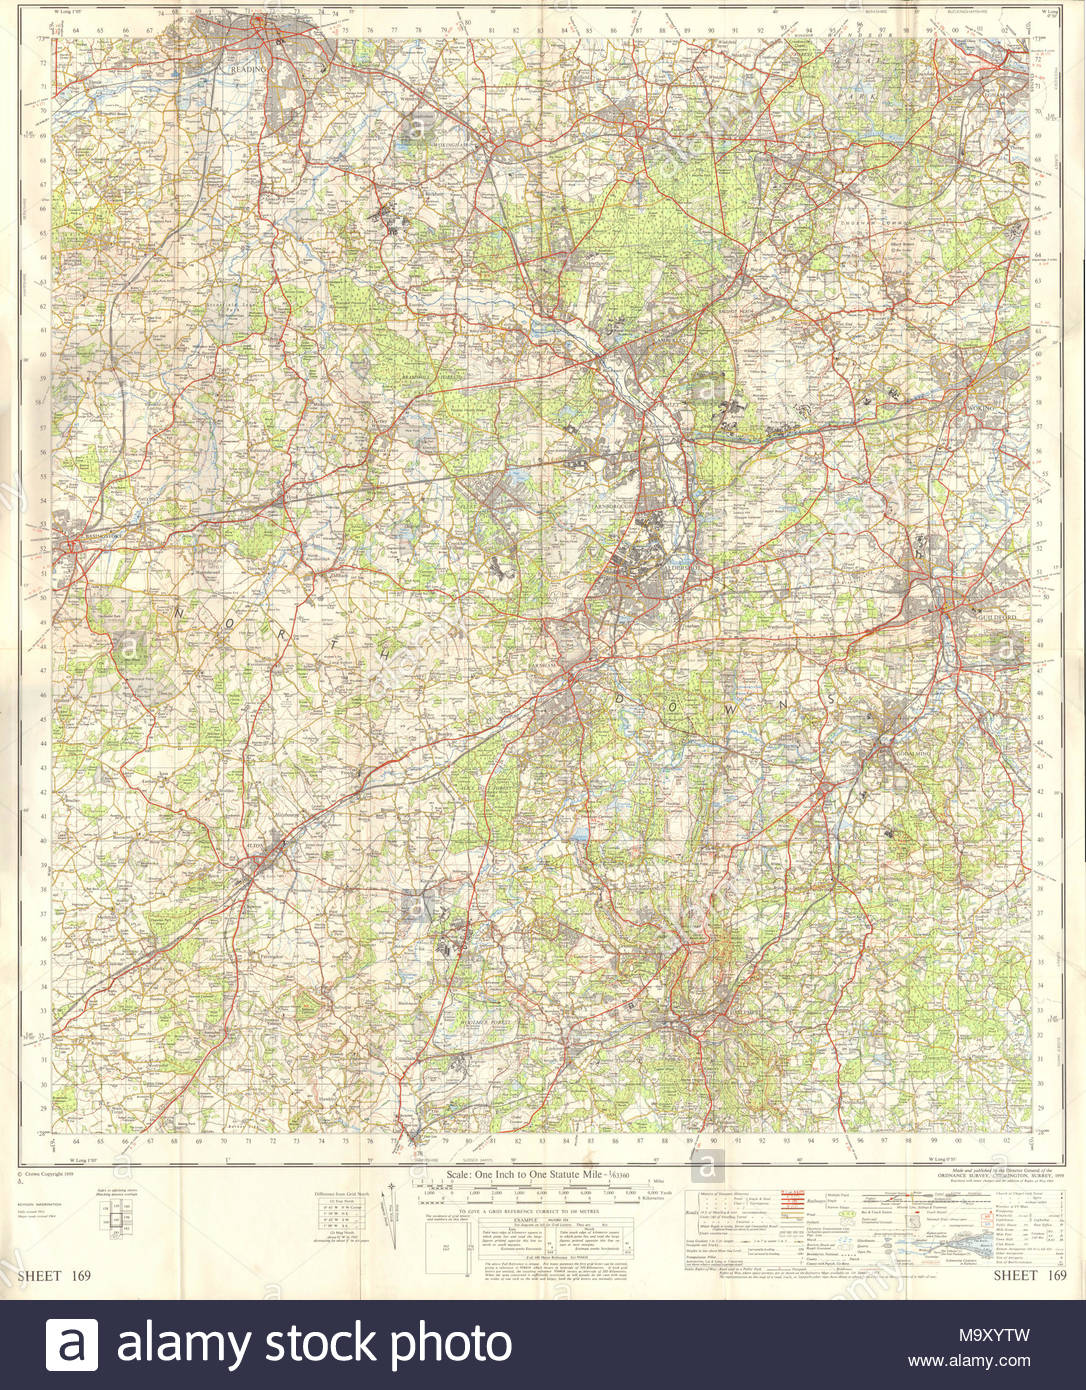 Os Map Of Aldershot And The Surrounding Region In Hampshire Surrey